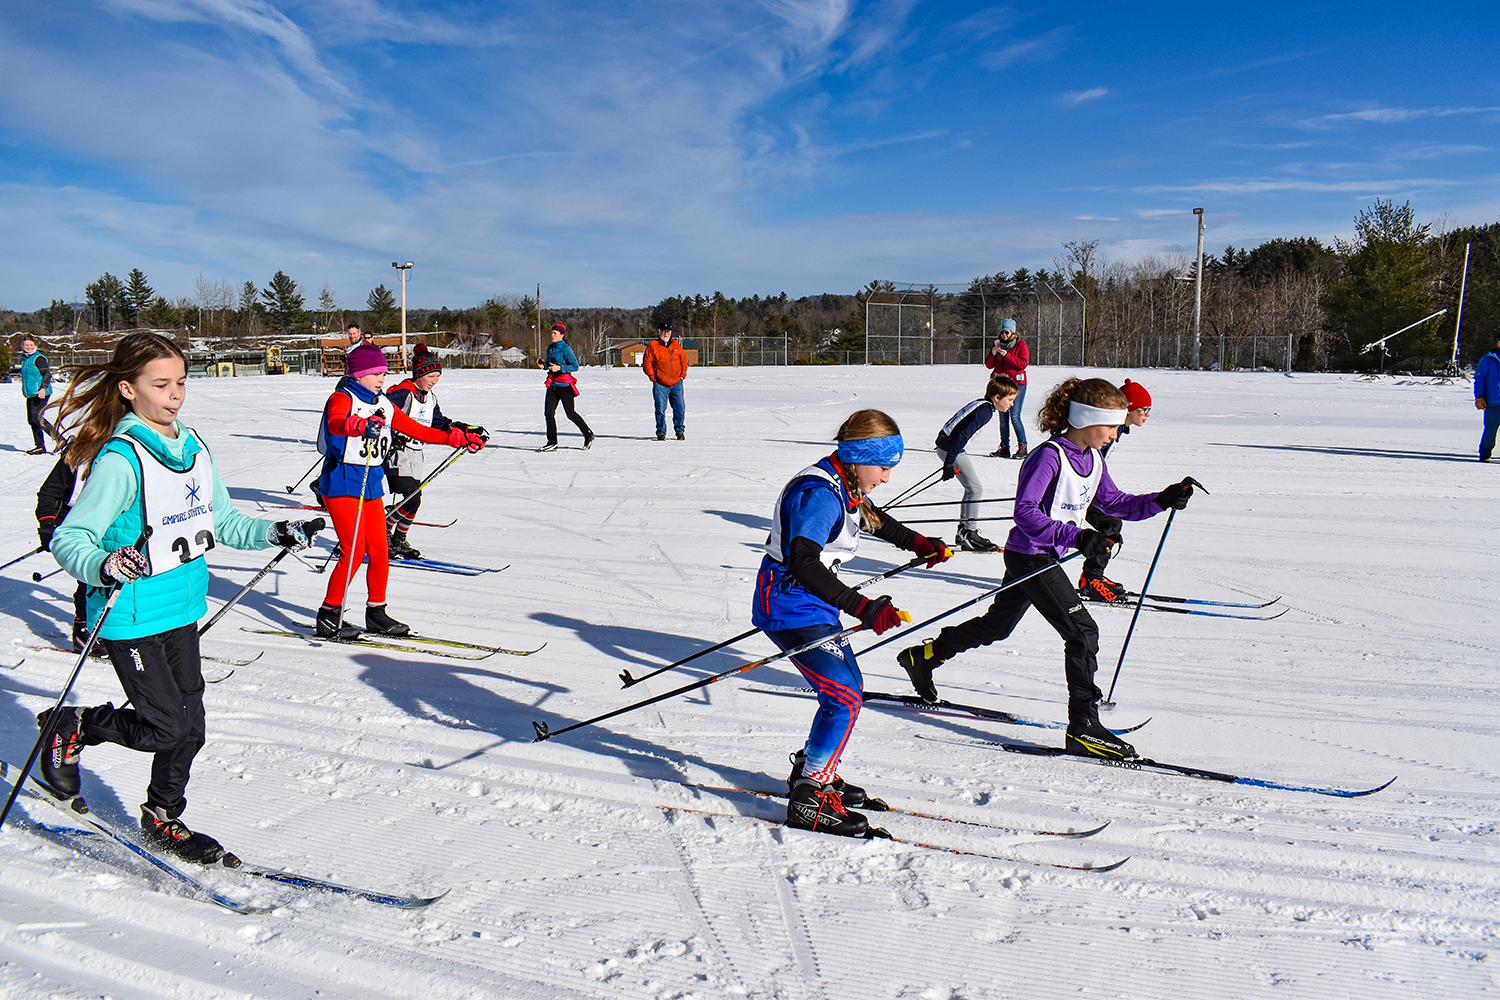 Start of the Bill Koch youth race at Shenendehowa Nordic's Classic Race on January 5, 2019 at Gore (Ski Bowl).   Darryl Caron